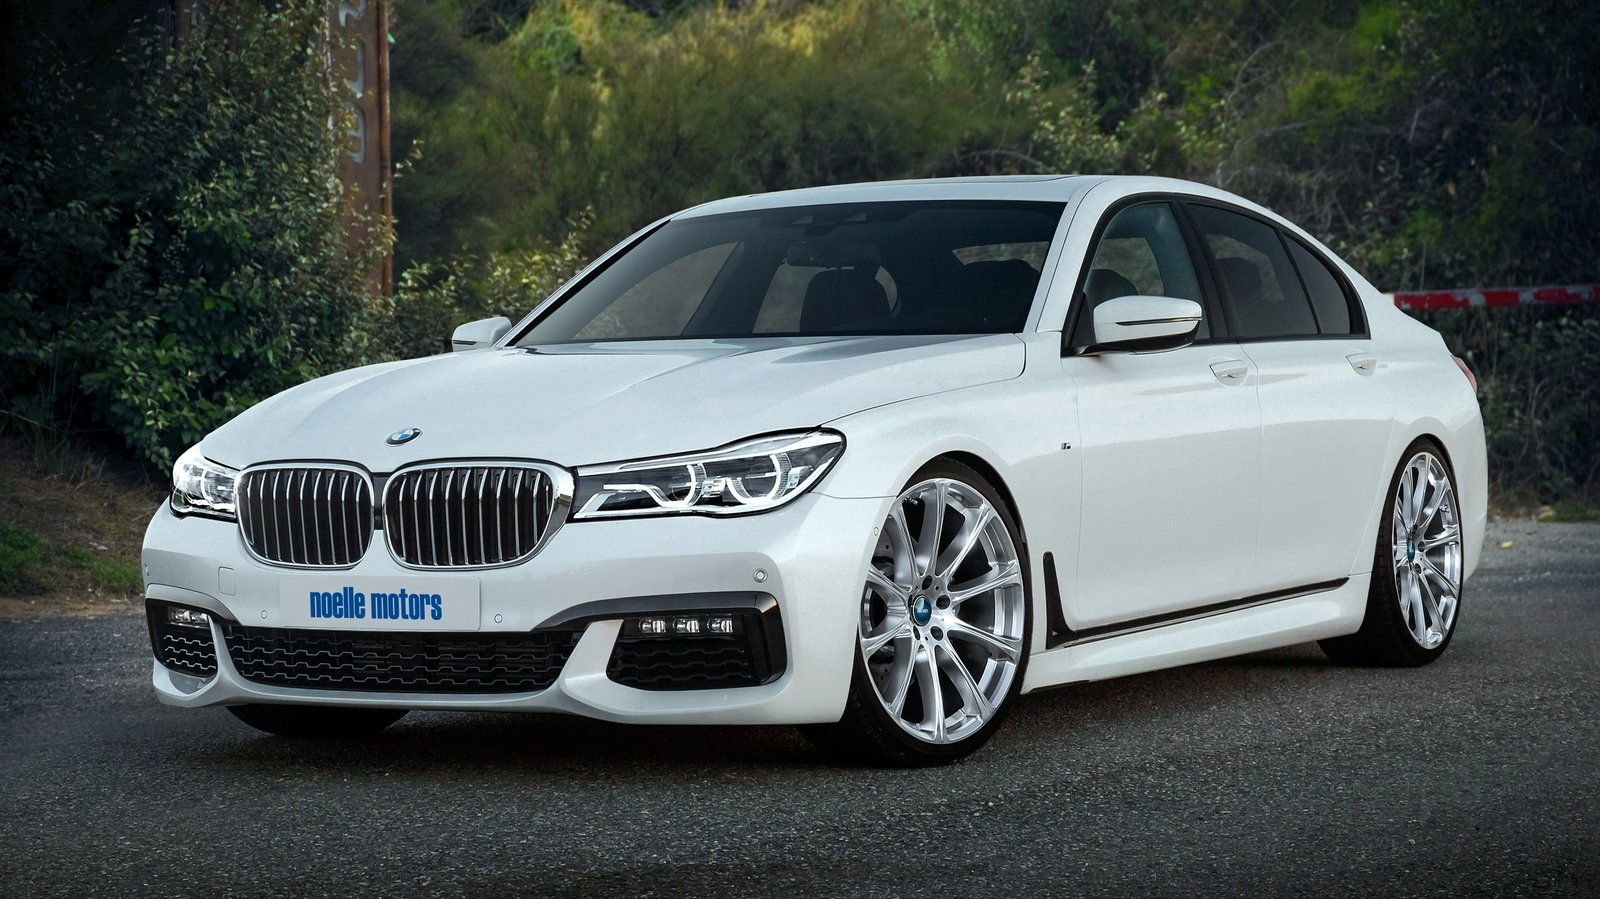 BMW I By Noelle Motors Review Top Speed - 750i bmw price